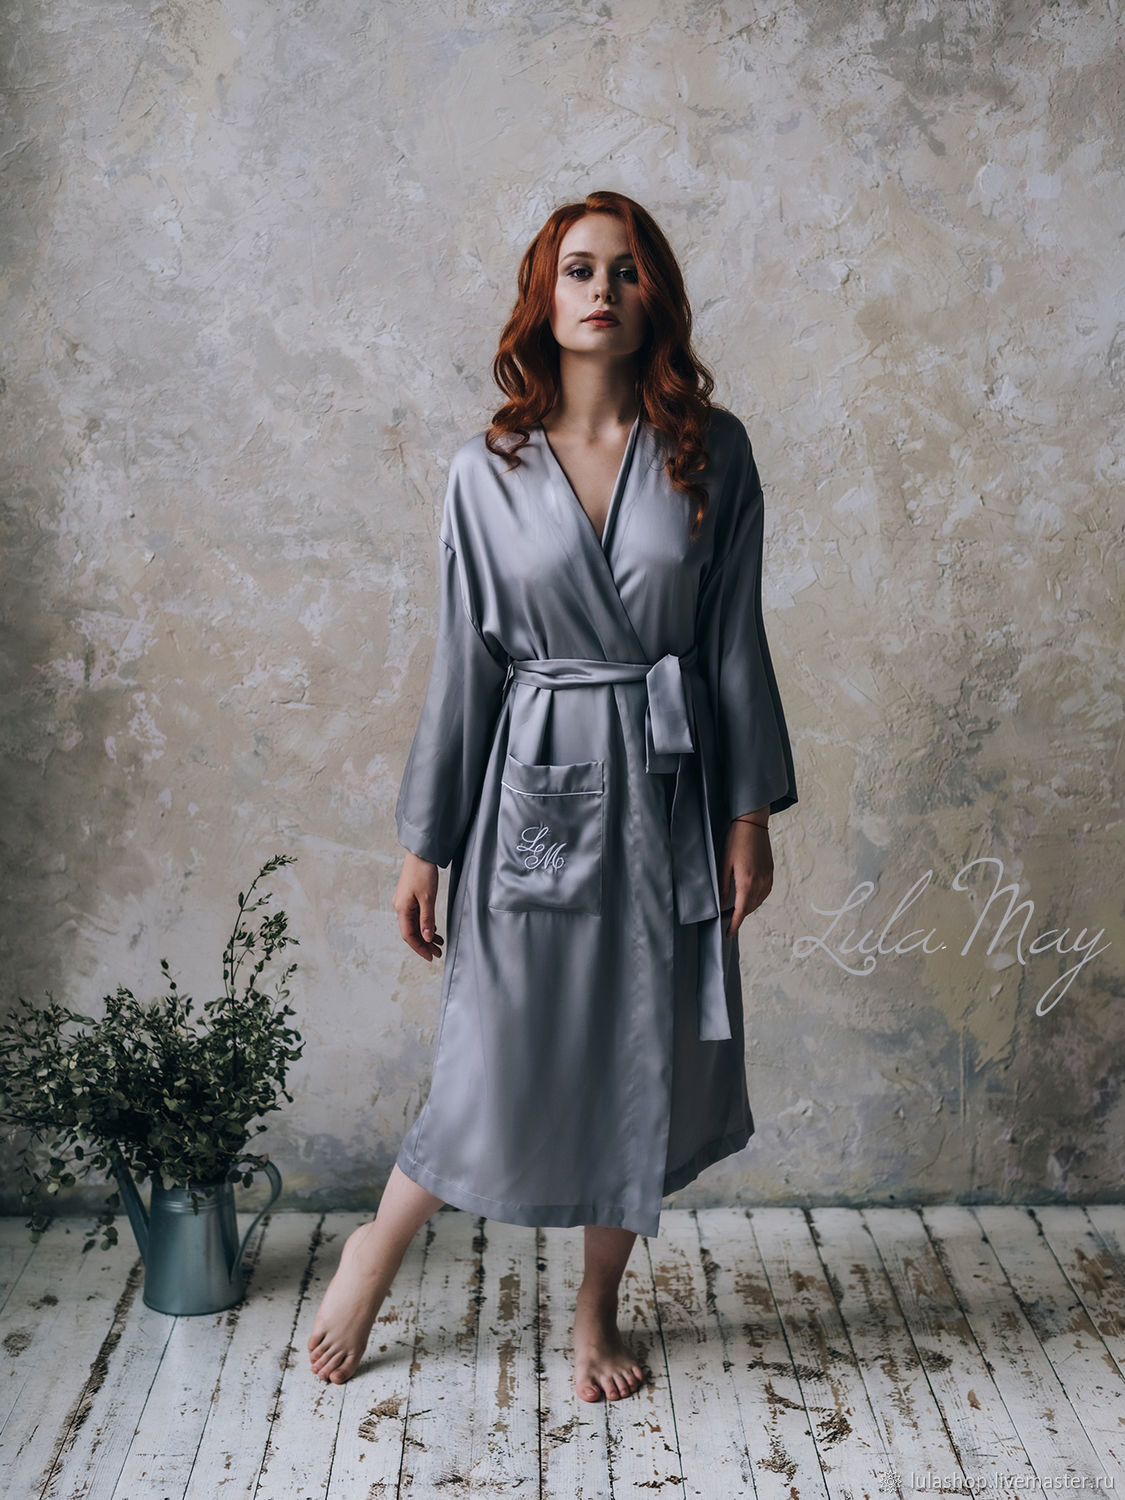 Personal tencel robe with monogram embroidery, Robes, Moscow,  Фото №1